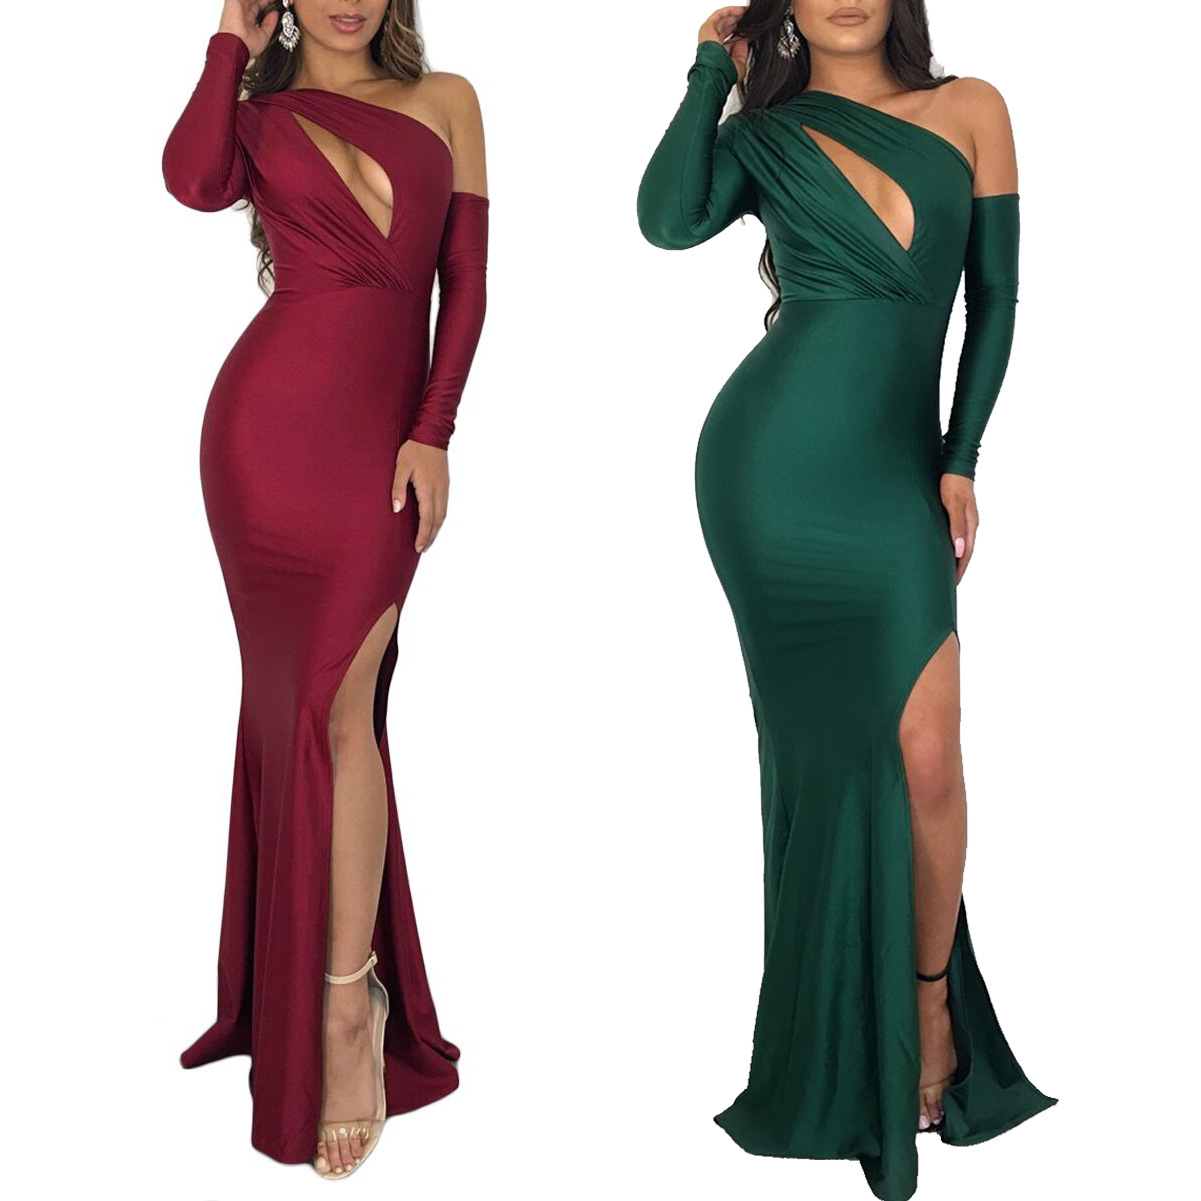 2018 Summer New Women's  Dresses Sexy crotch Off Shoulder long Sleeve Party Dress Pure Color Dovetail Dress Vestidos